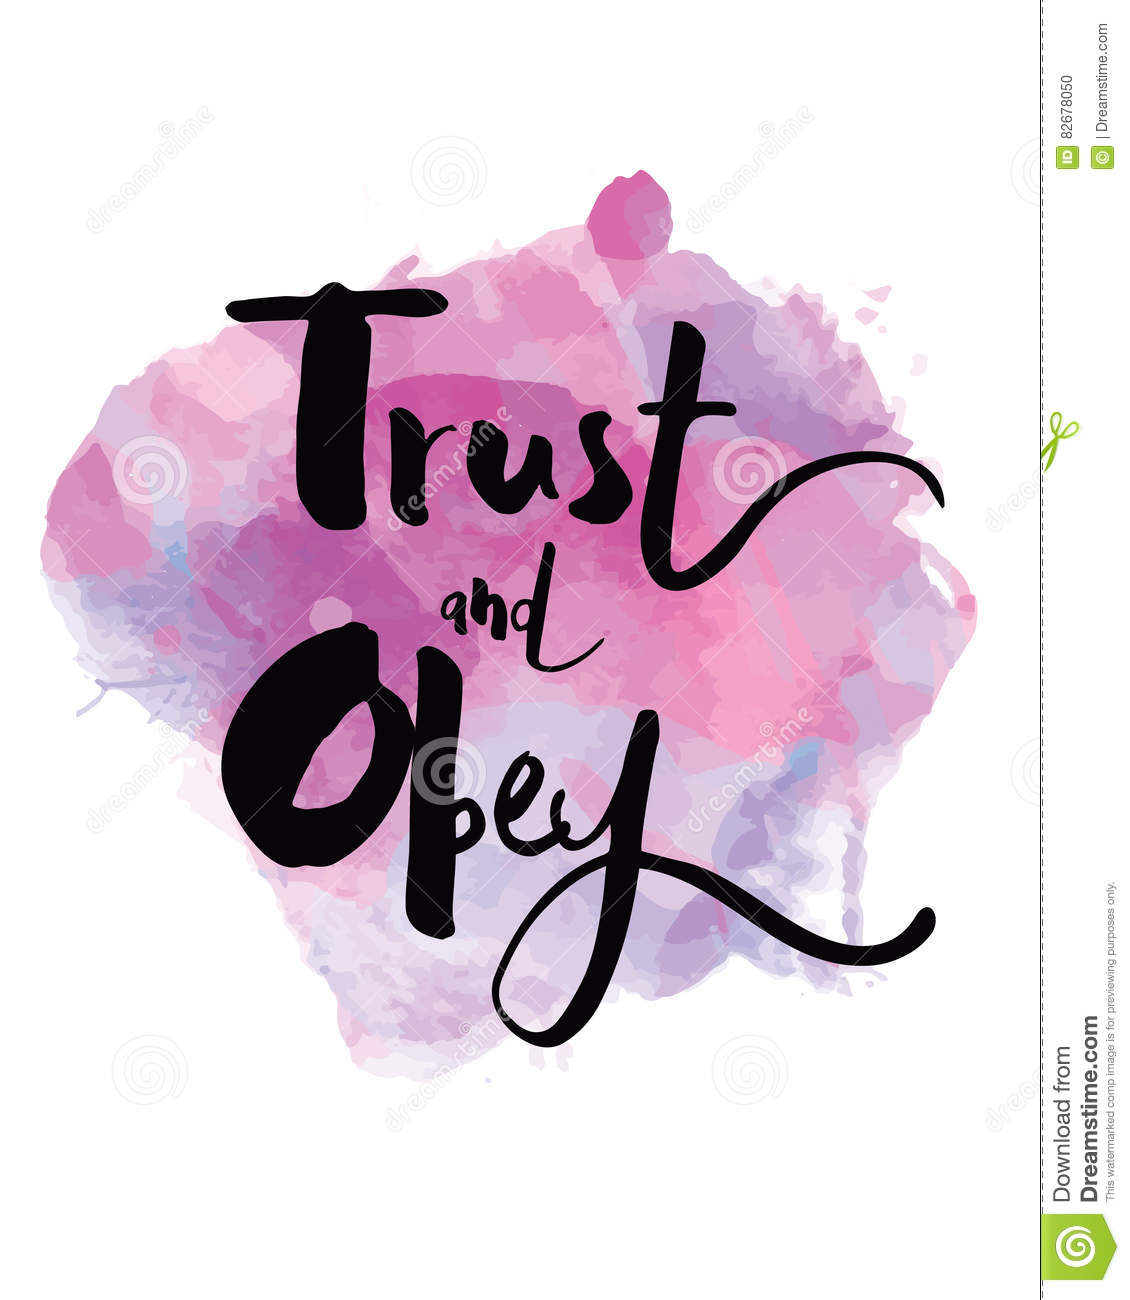 trust and obey audio download